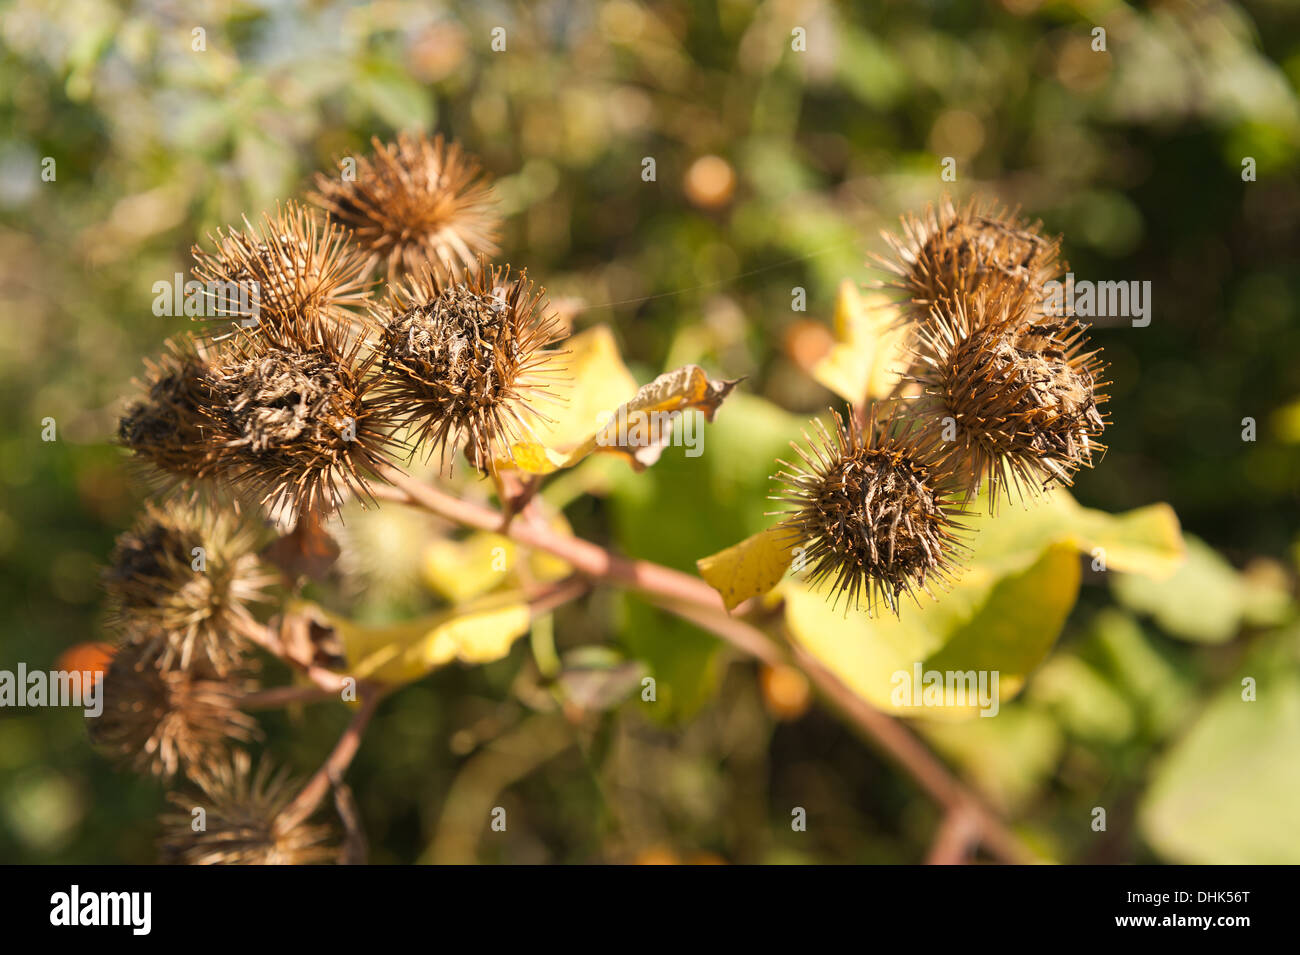 seed fruit cases of burdock plant whose hook tipped burrs inspired